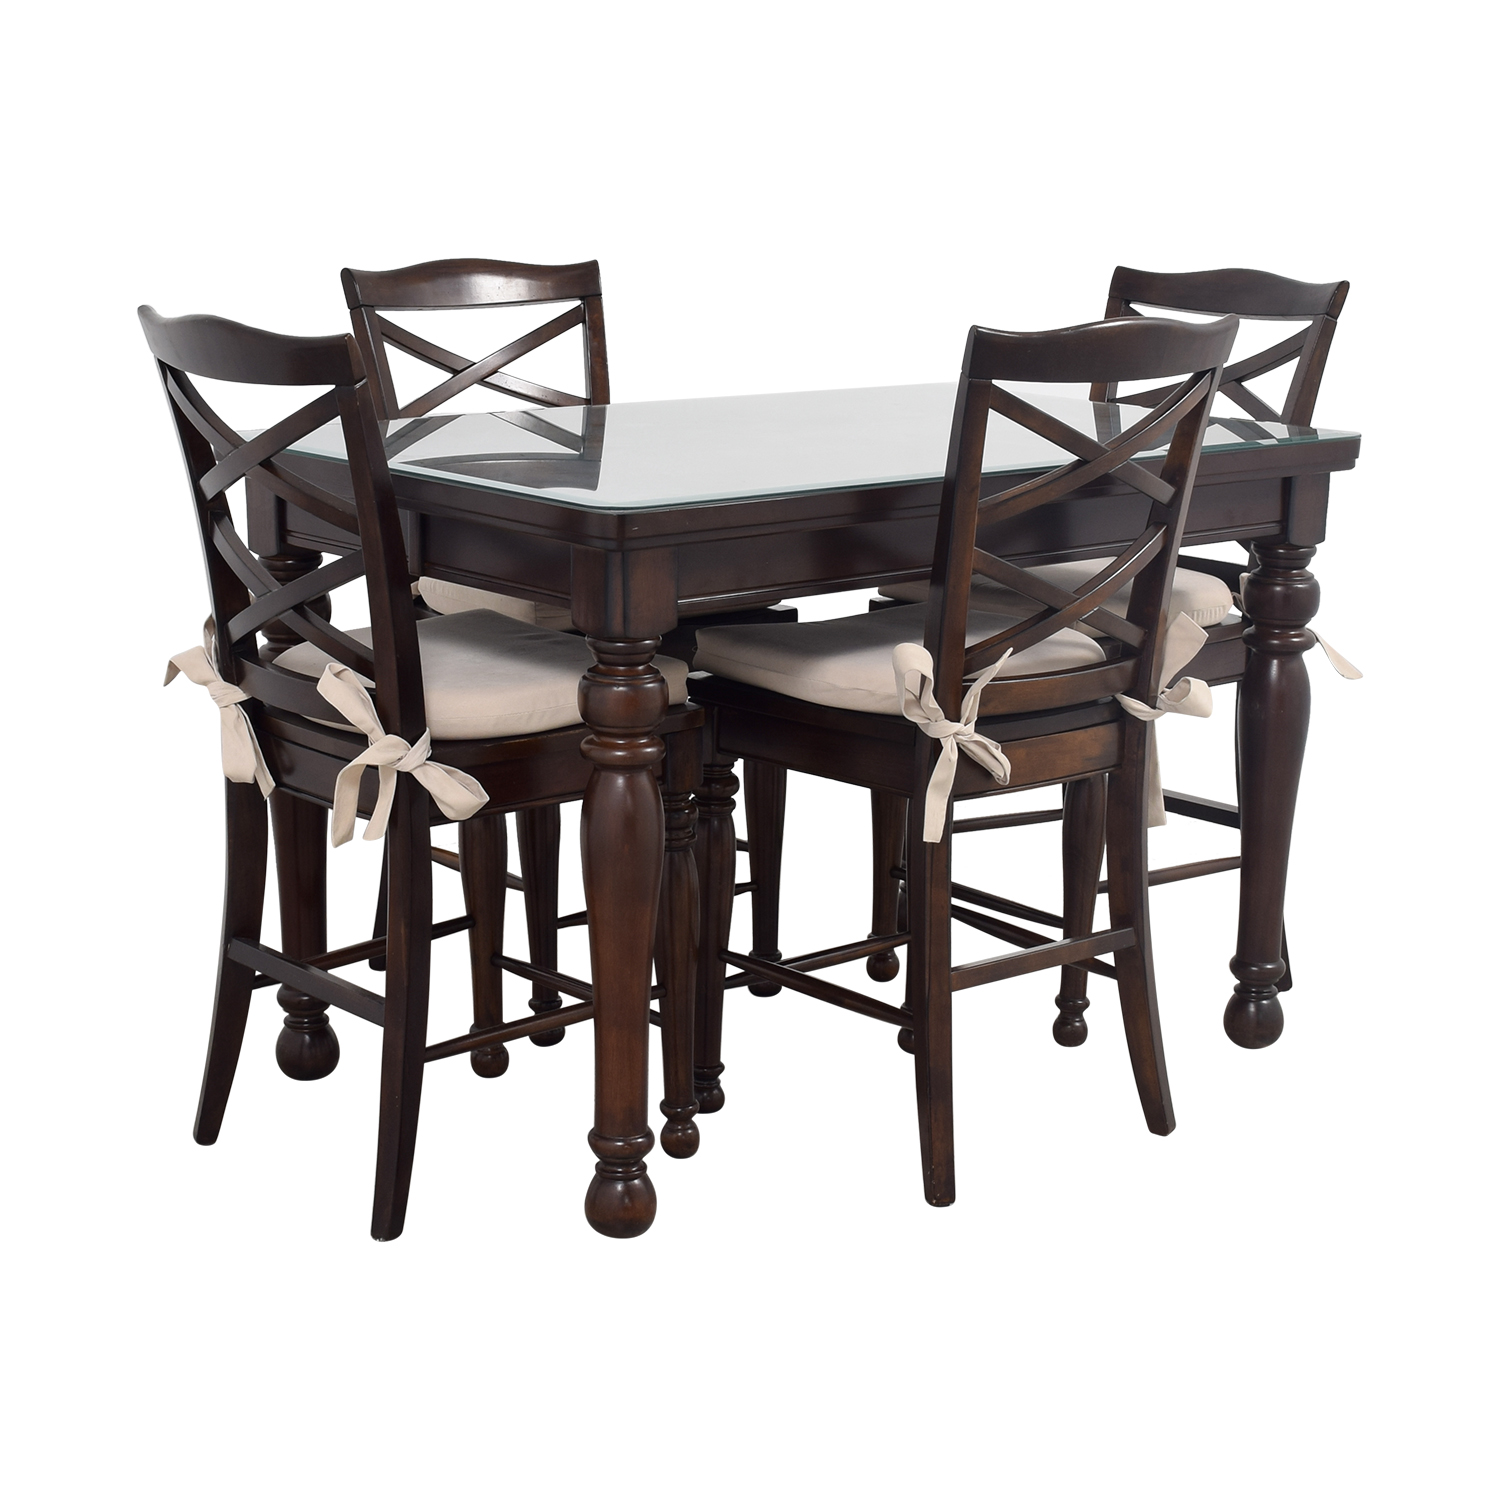 79% OFF   Ashley Furniture Ashley Furniture Dark Wood Dining Set With Seat  Cushions / Tables